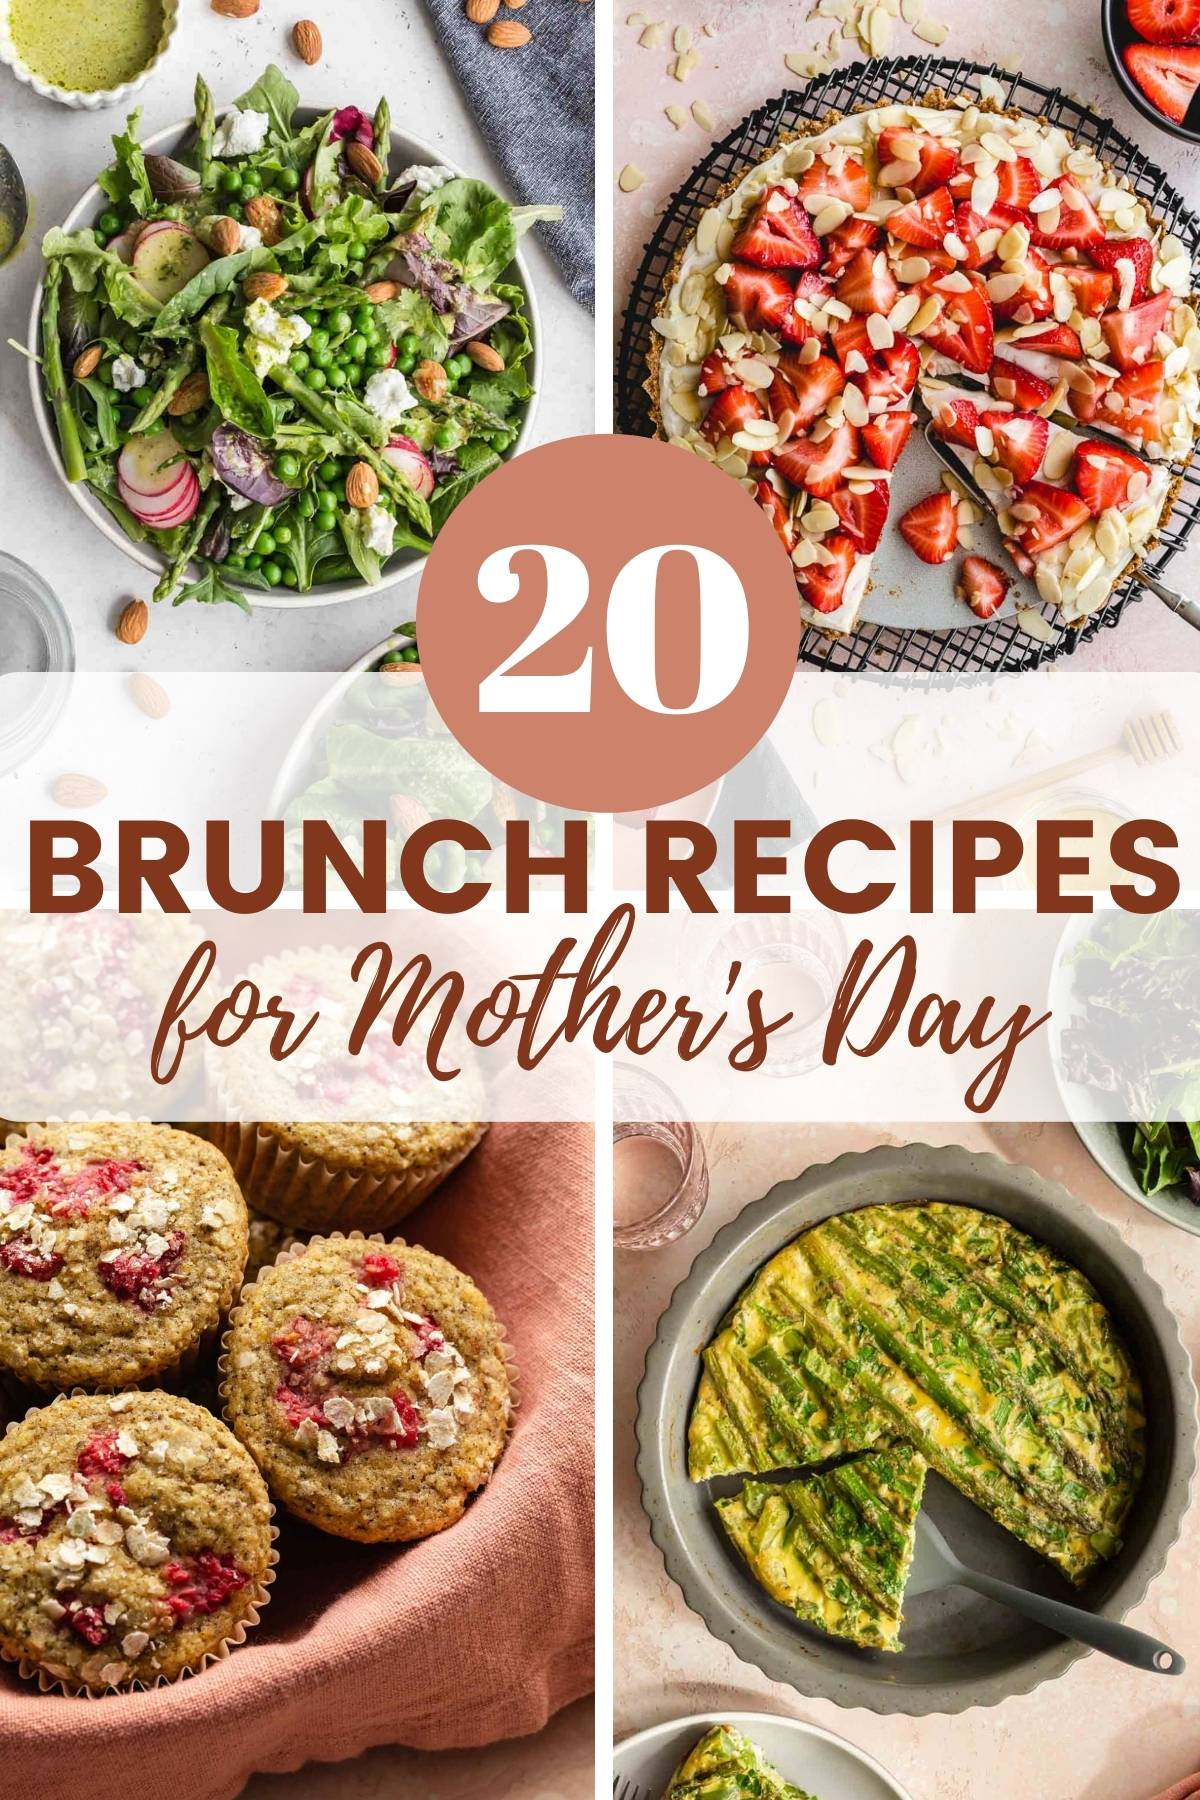 Collage of four brunch recipe images with text in the middle promoting 20 brunch recipes for Mother's Day.